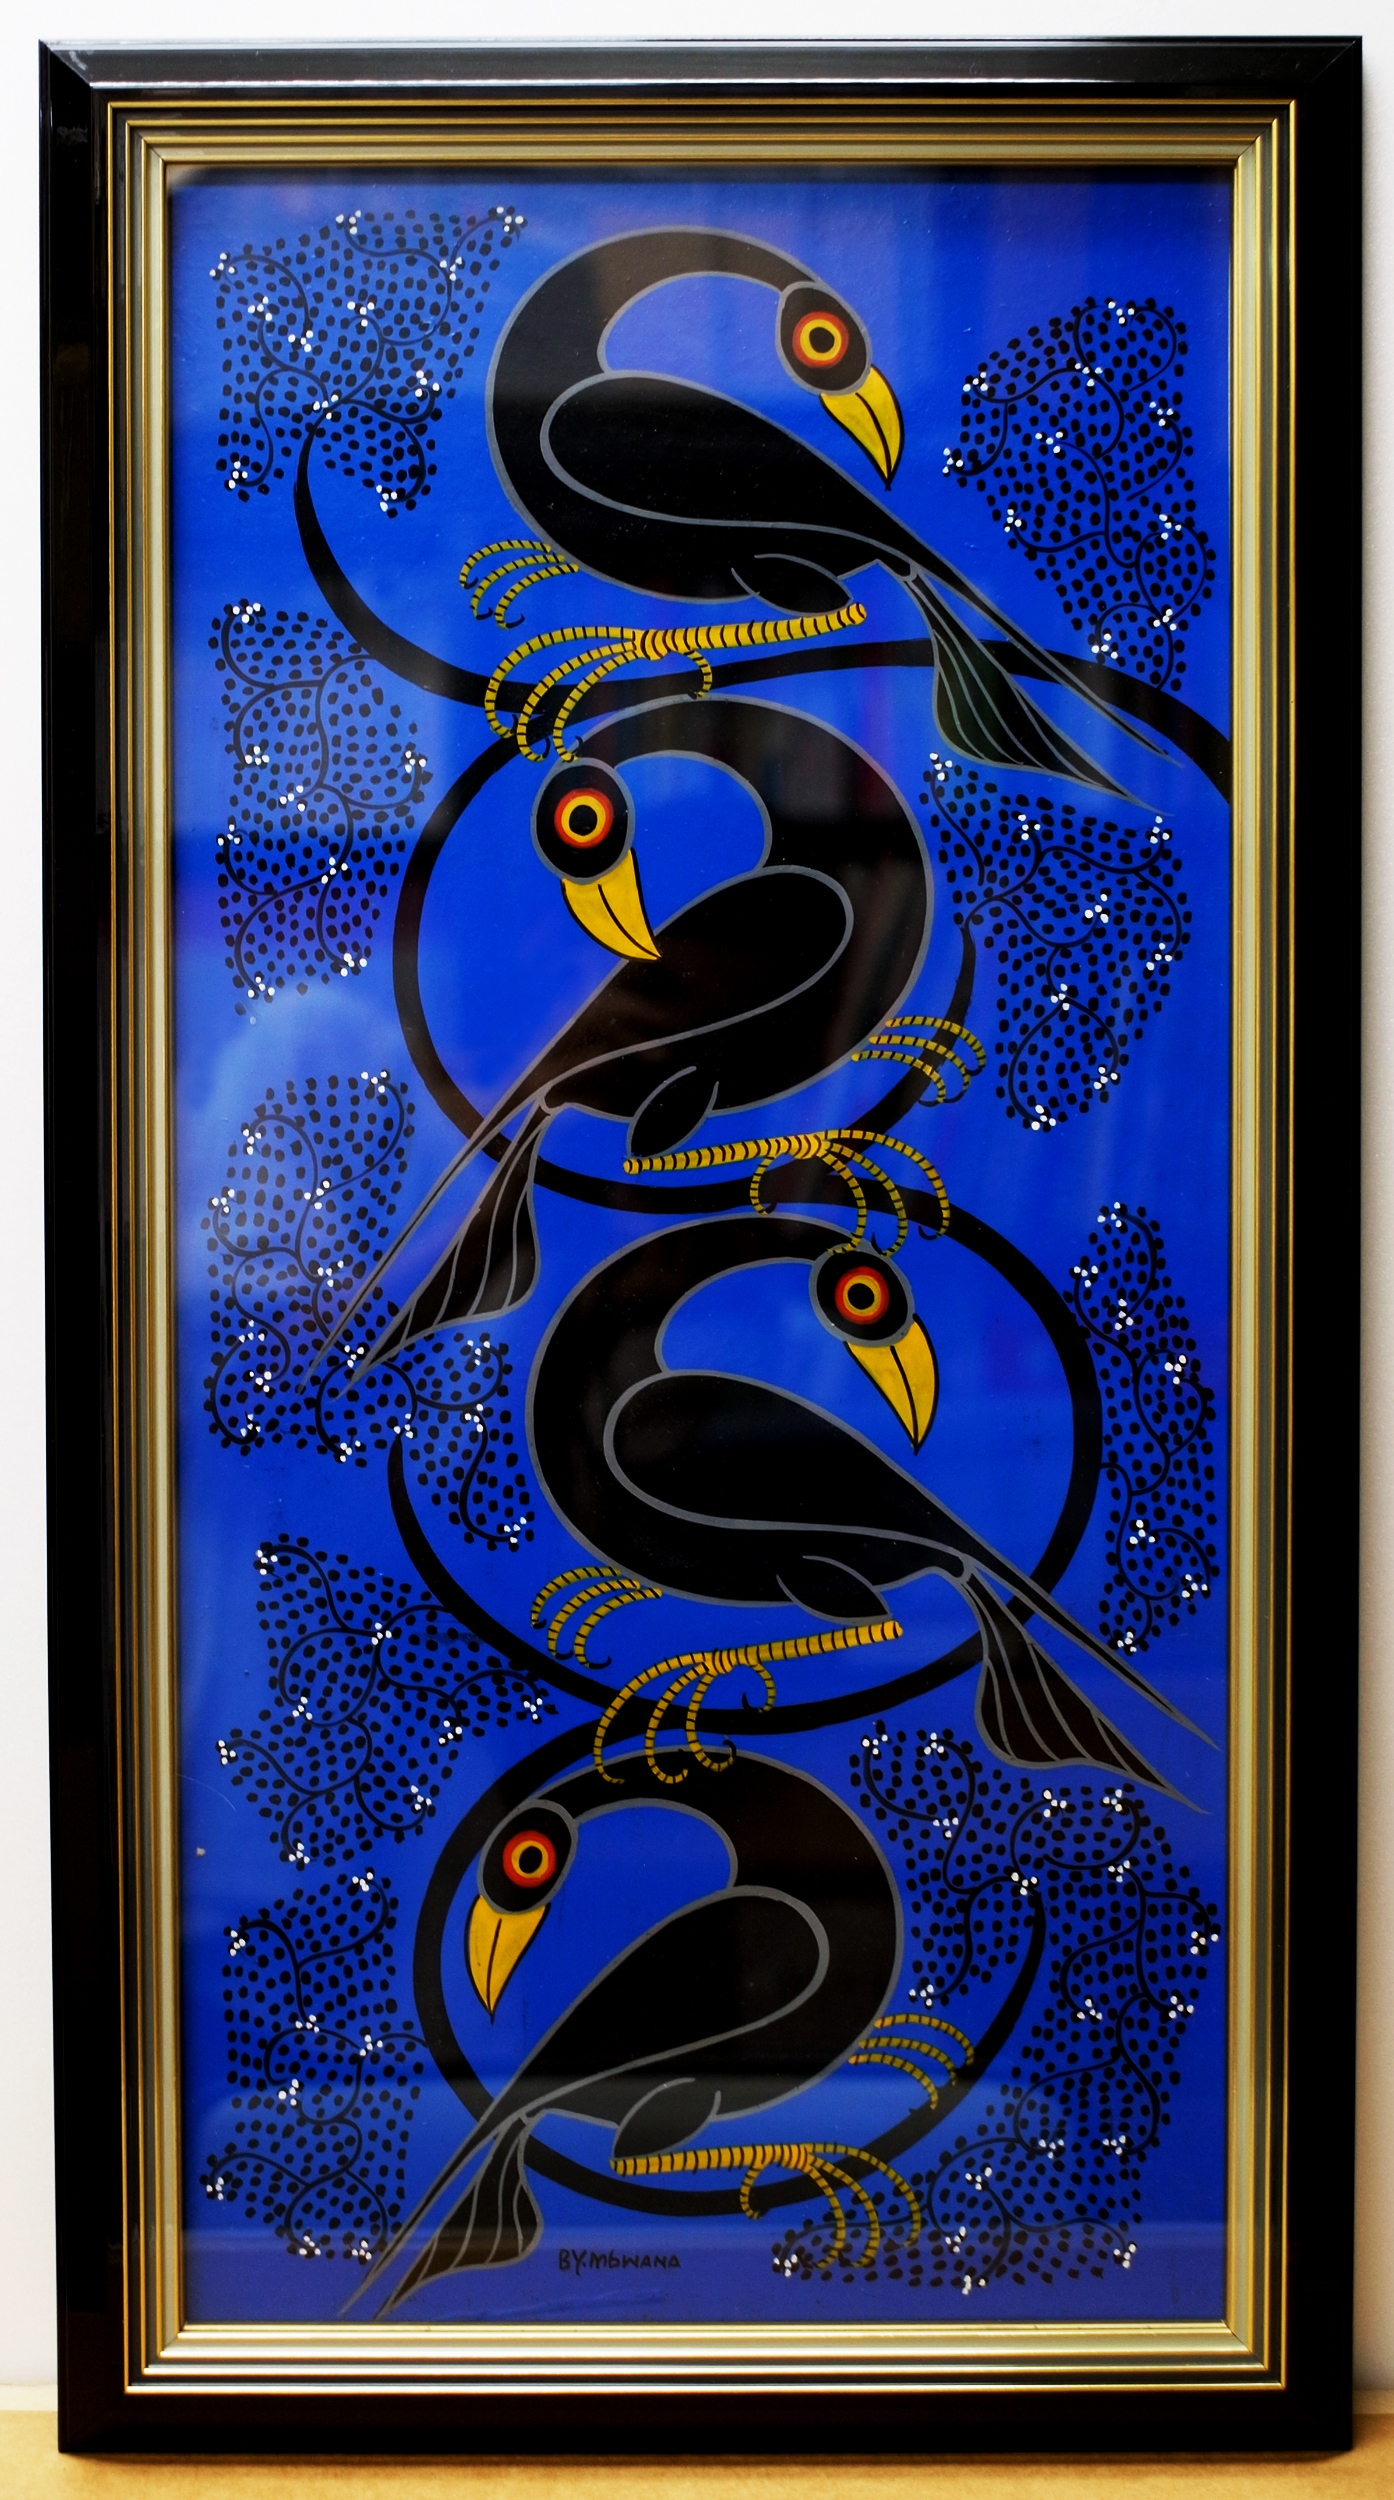 4 Birds (600×300 Framed)